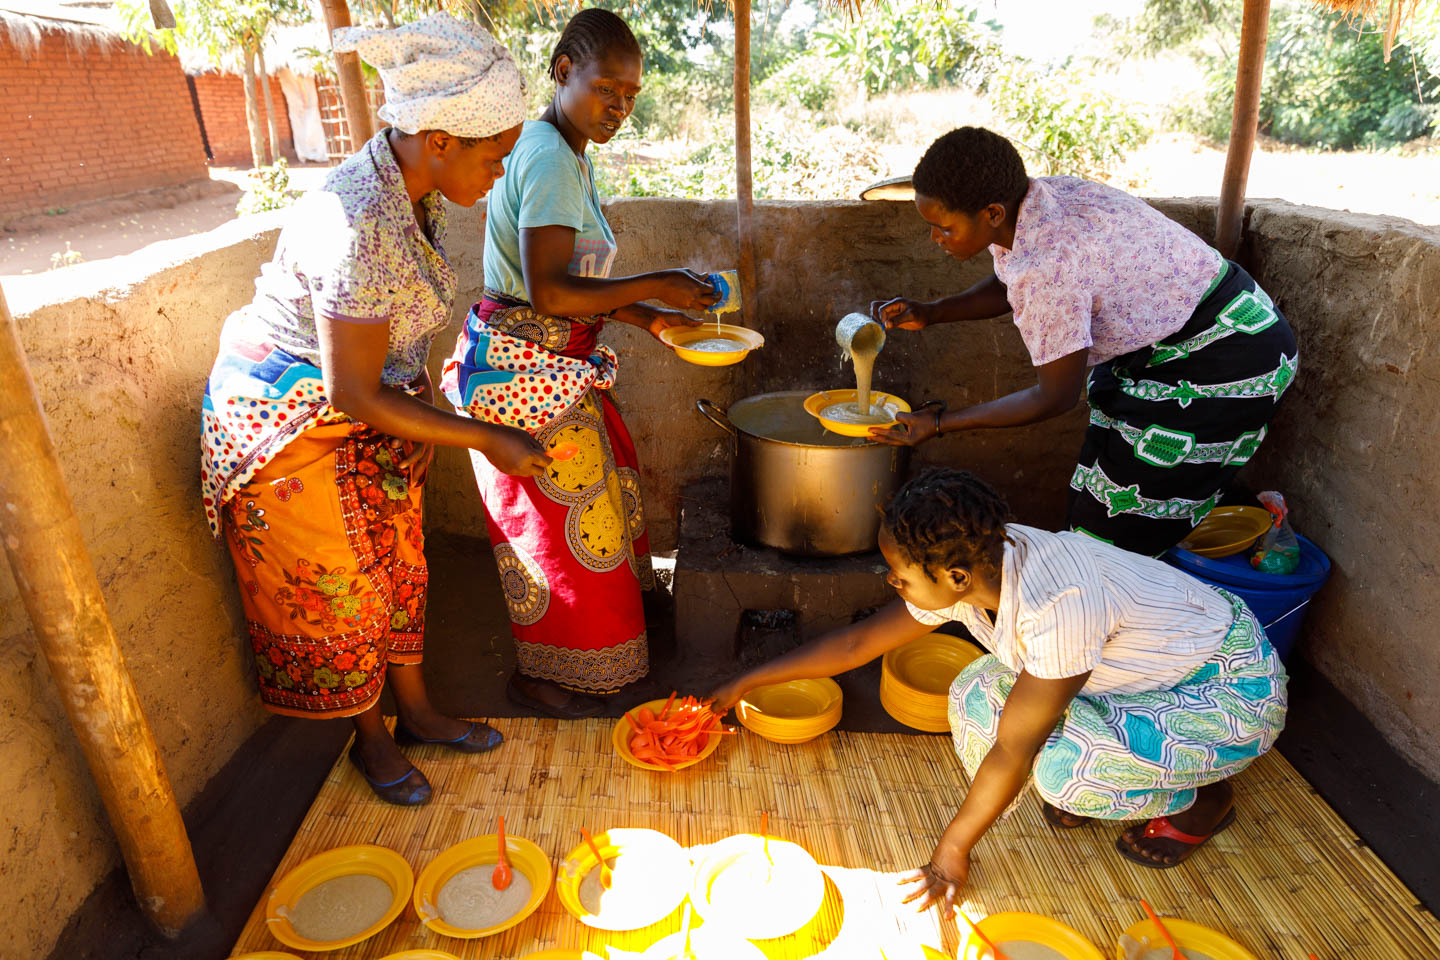 Local villagers prepare the Nourish the Children porridge